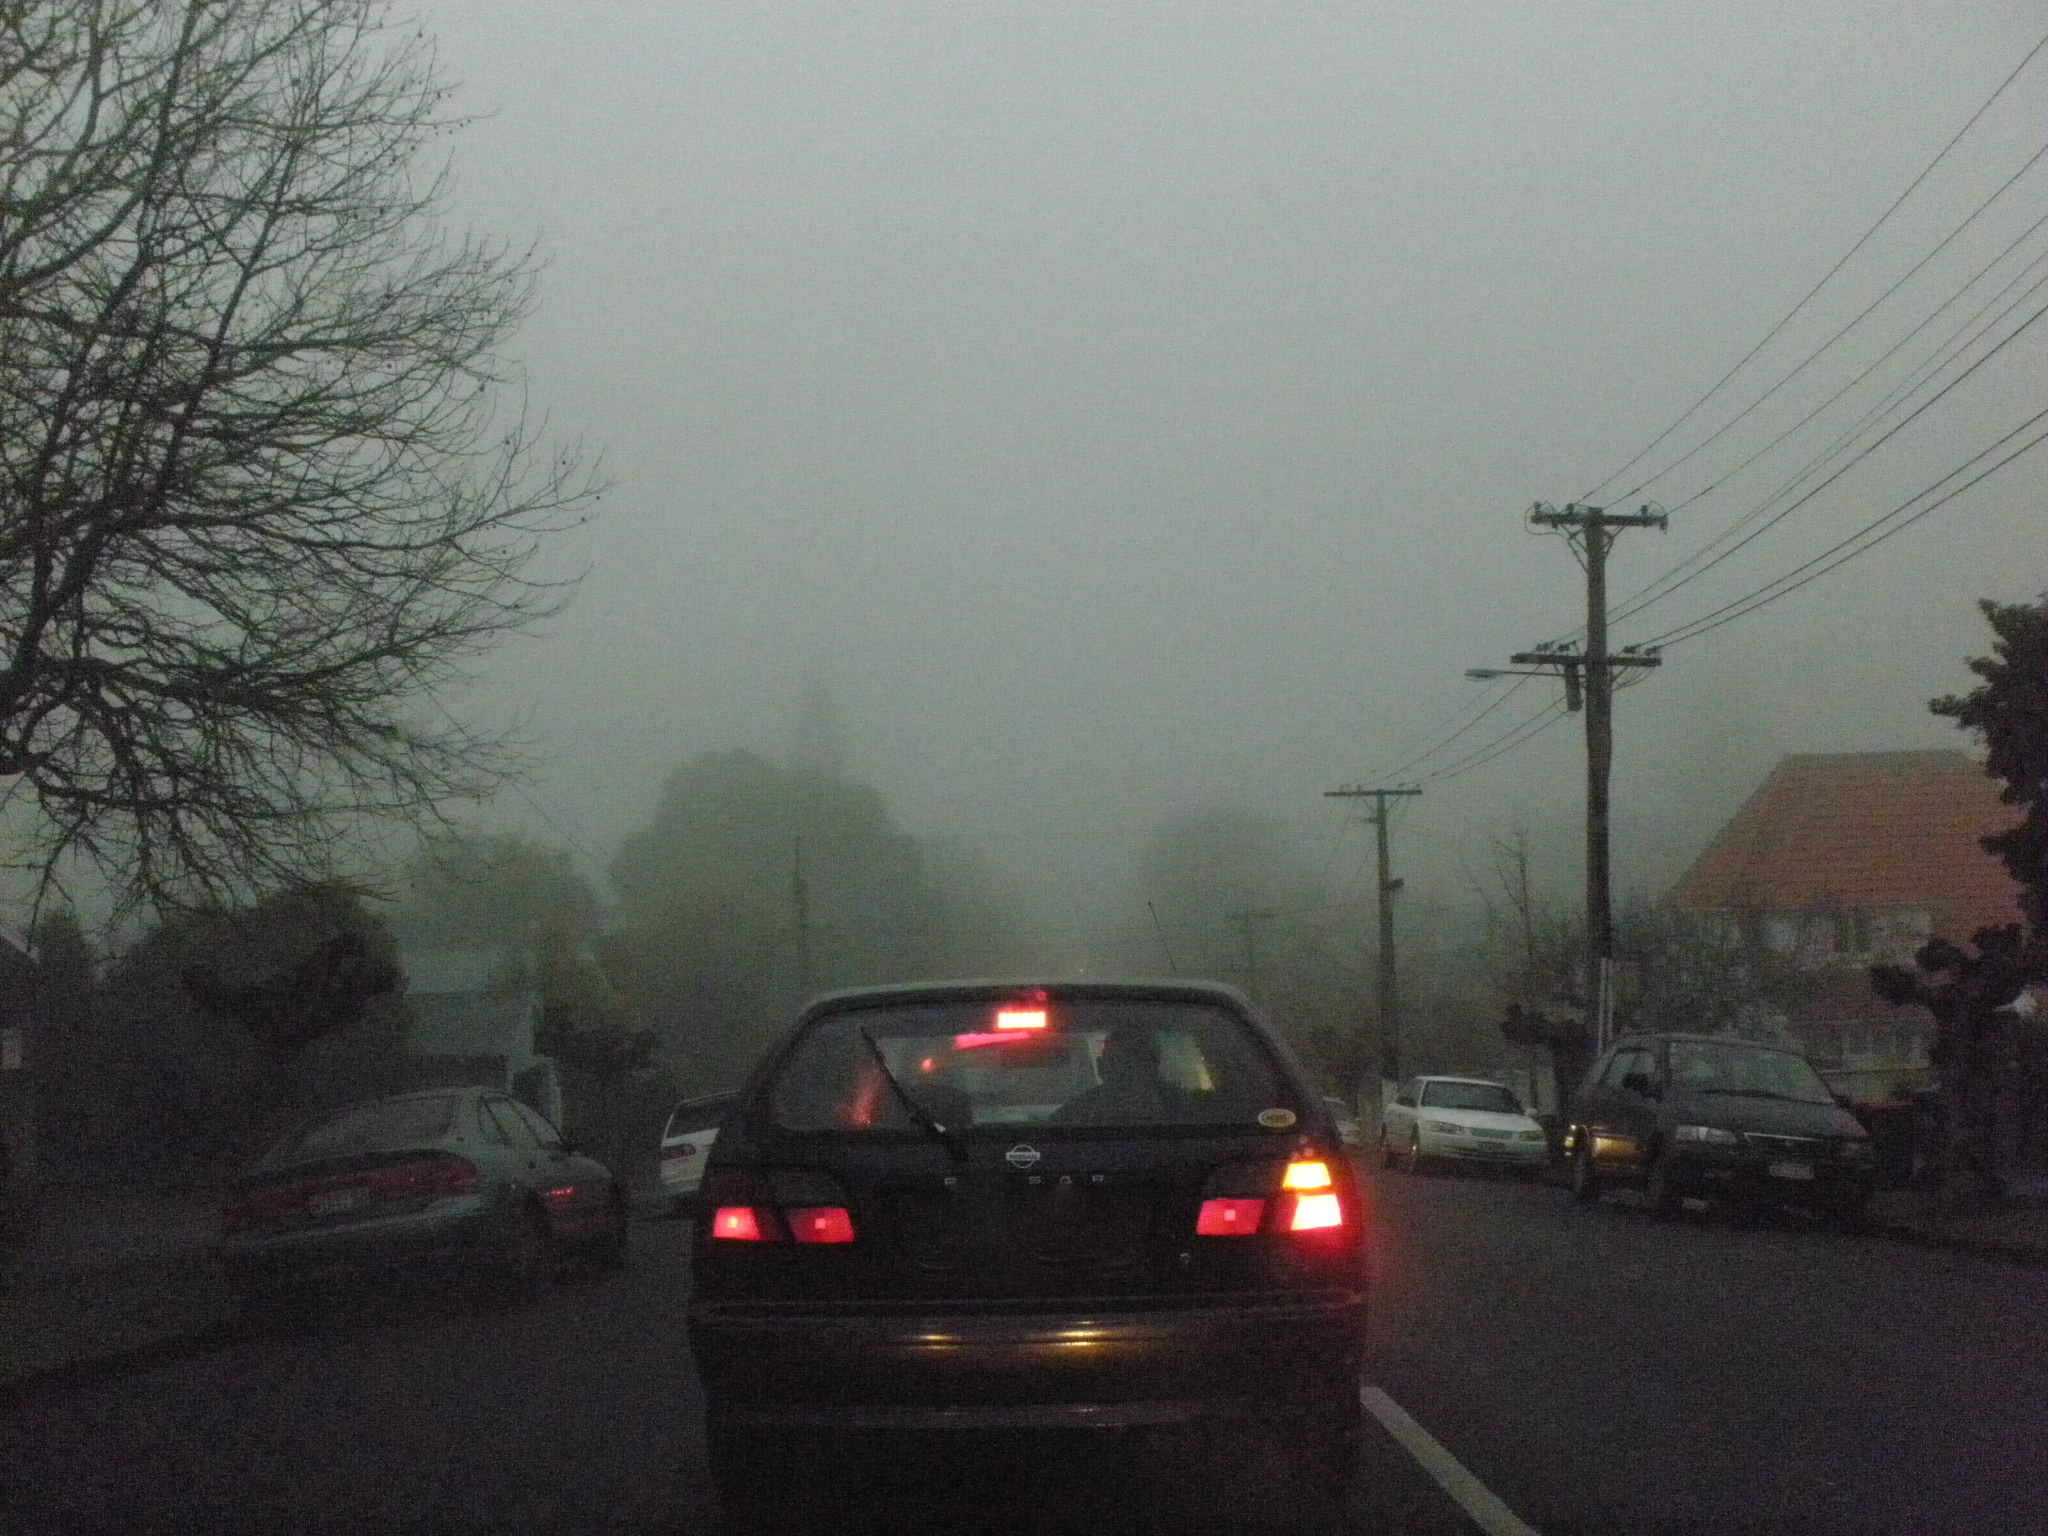 of course given the lack of visibility jacquie insisted we take a